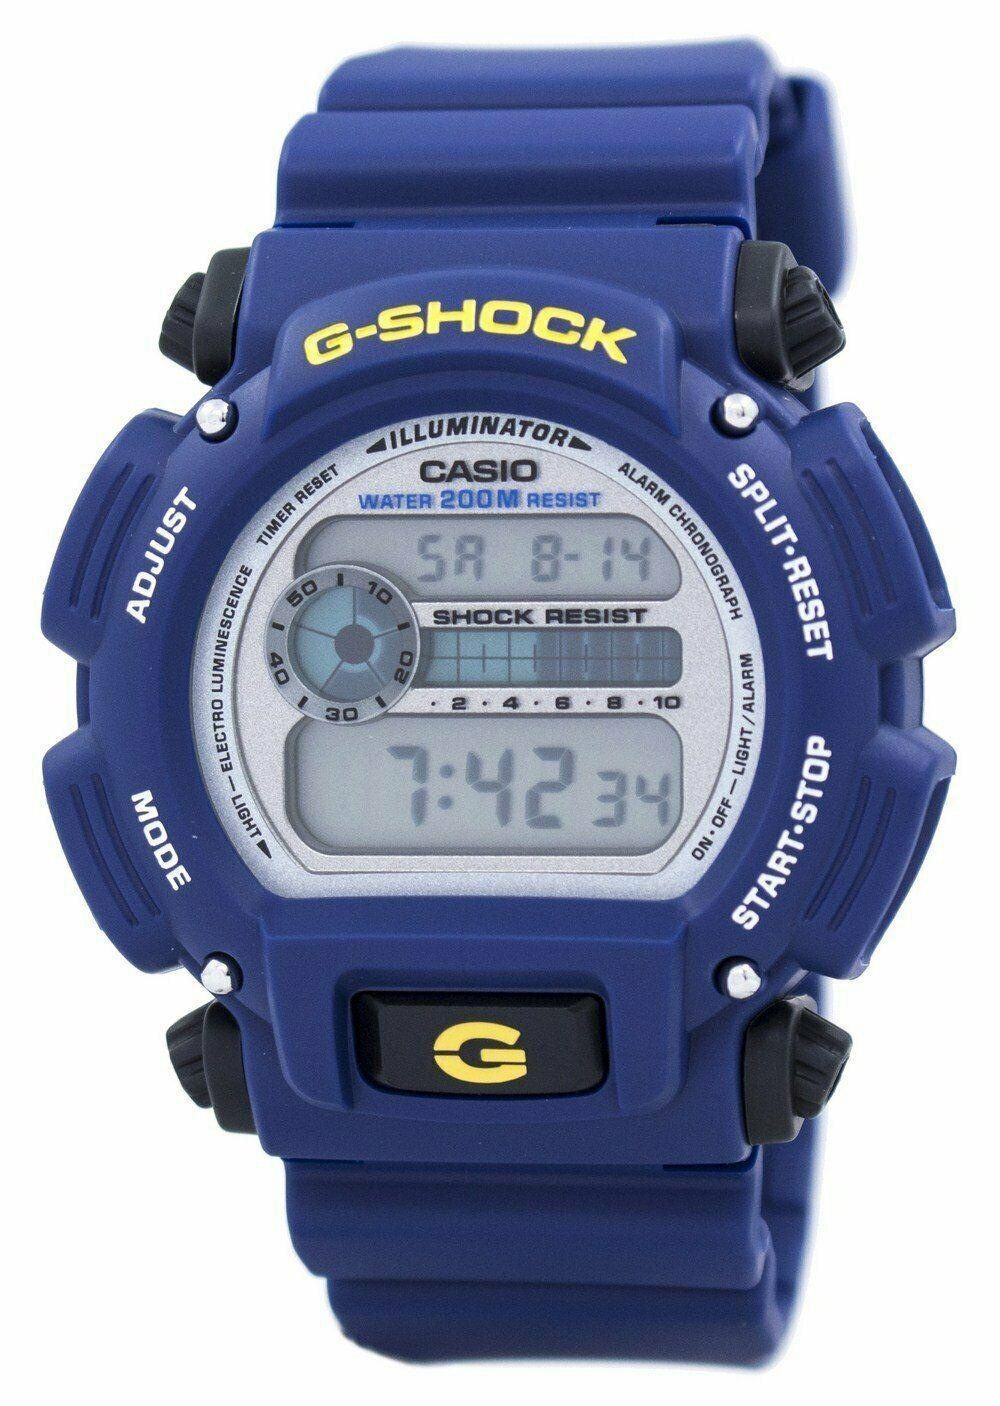 Casio G-Shock Illuminator DW-9052-2VDR DW9052-2VDR 200M Digital Men's Watch